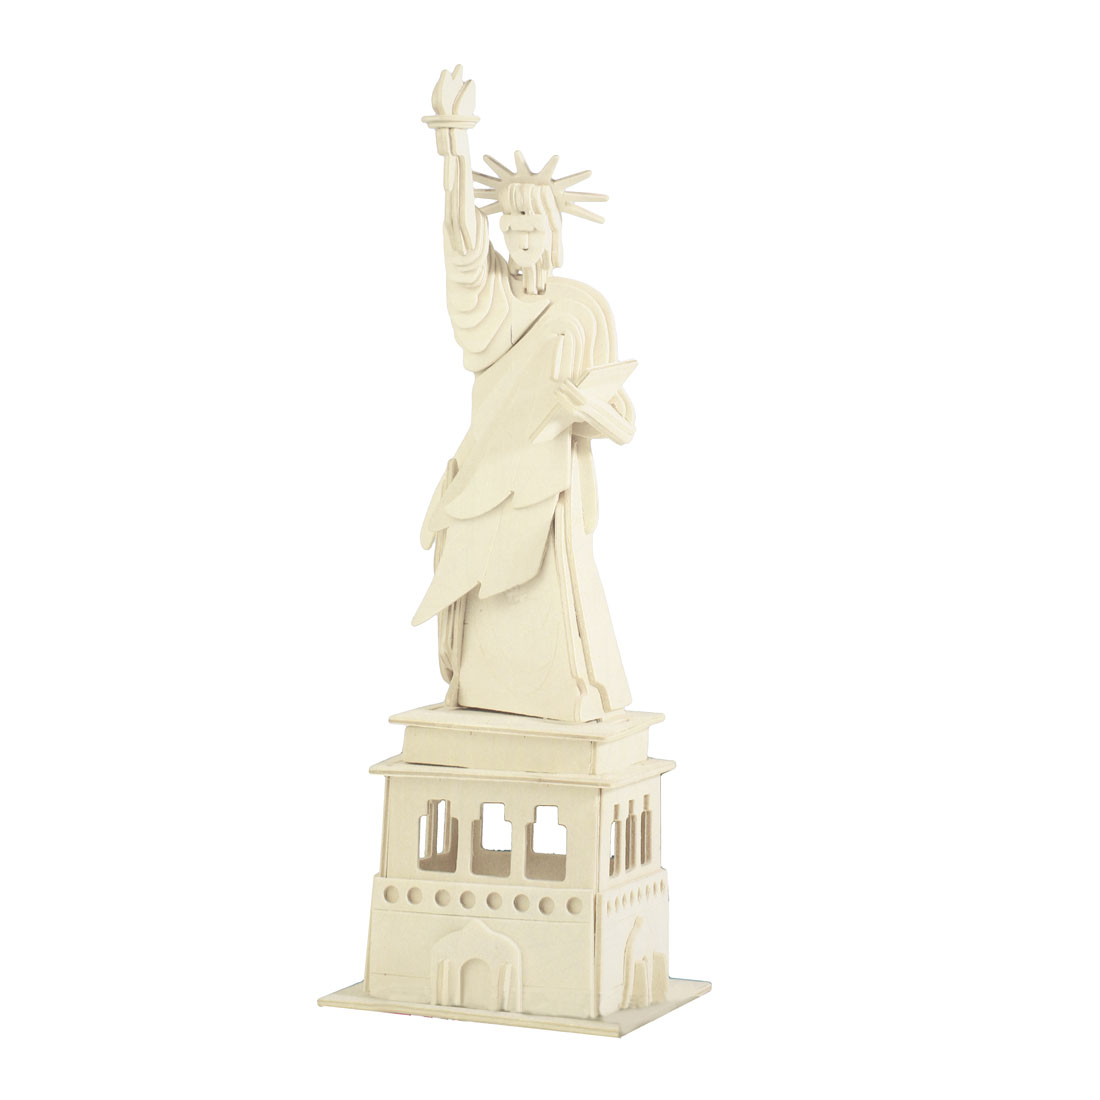 The Statue of Liberty Model Creative Wooden Puzzle Toy